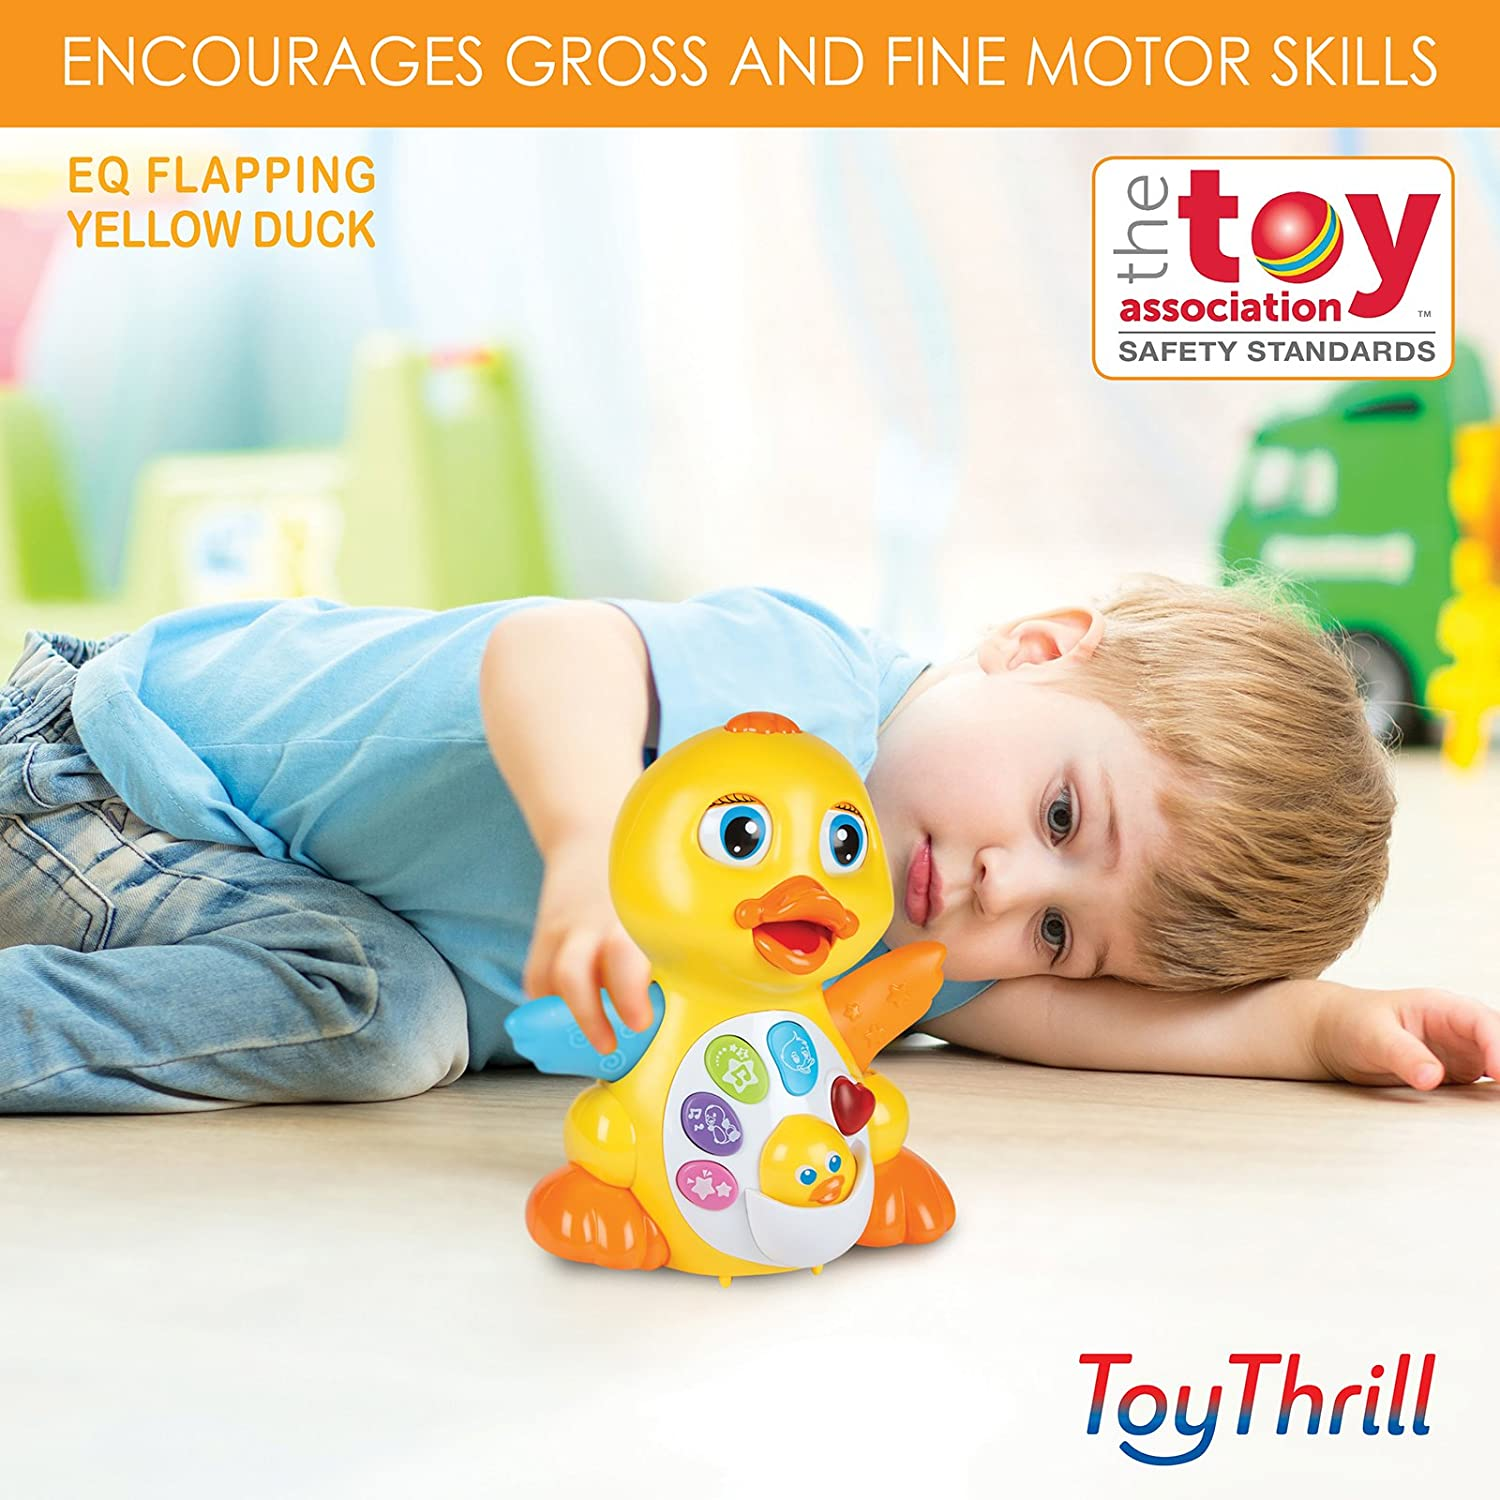 Amazon Light Up Dancing and Singing Duck Toy – Infant Baby